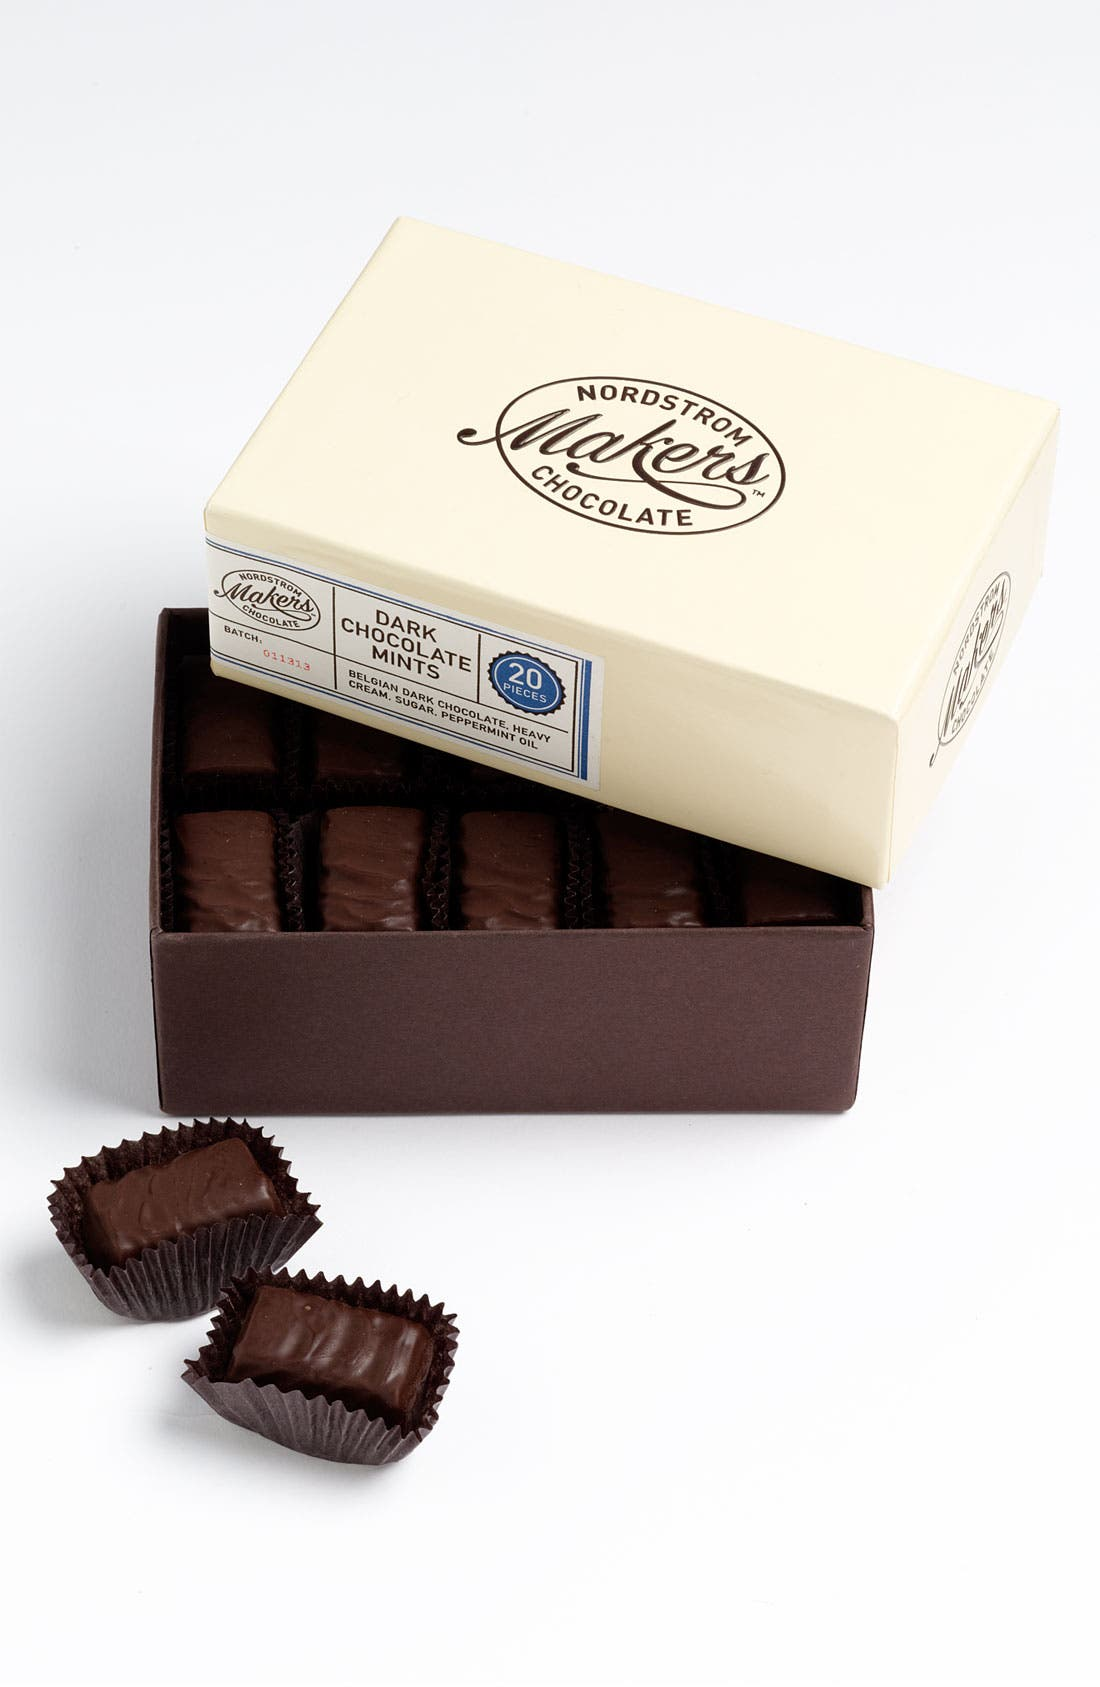 Alternate Image 1 Selected - Nordstrom Makers Chocolate Dark Chocolate Mints (20 Pieces)